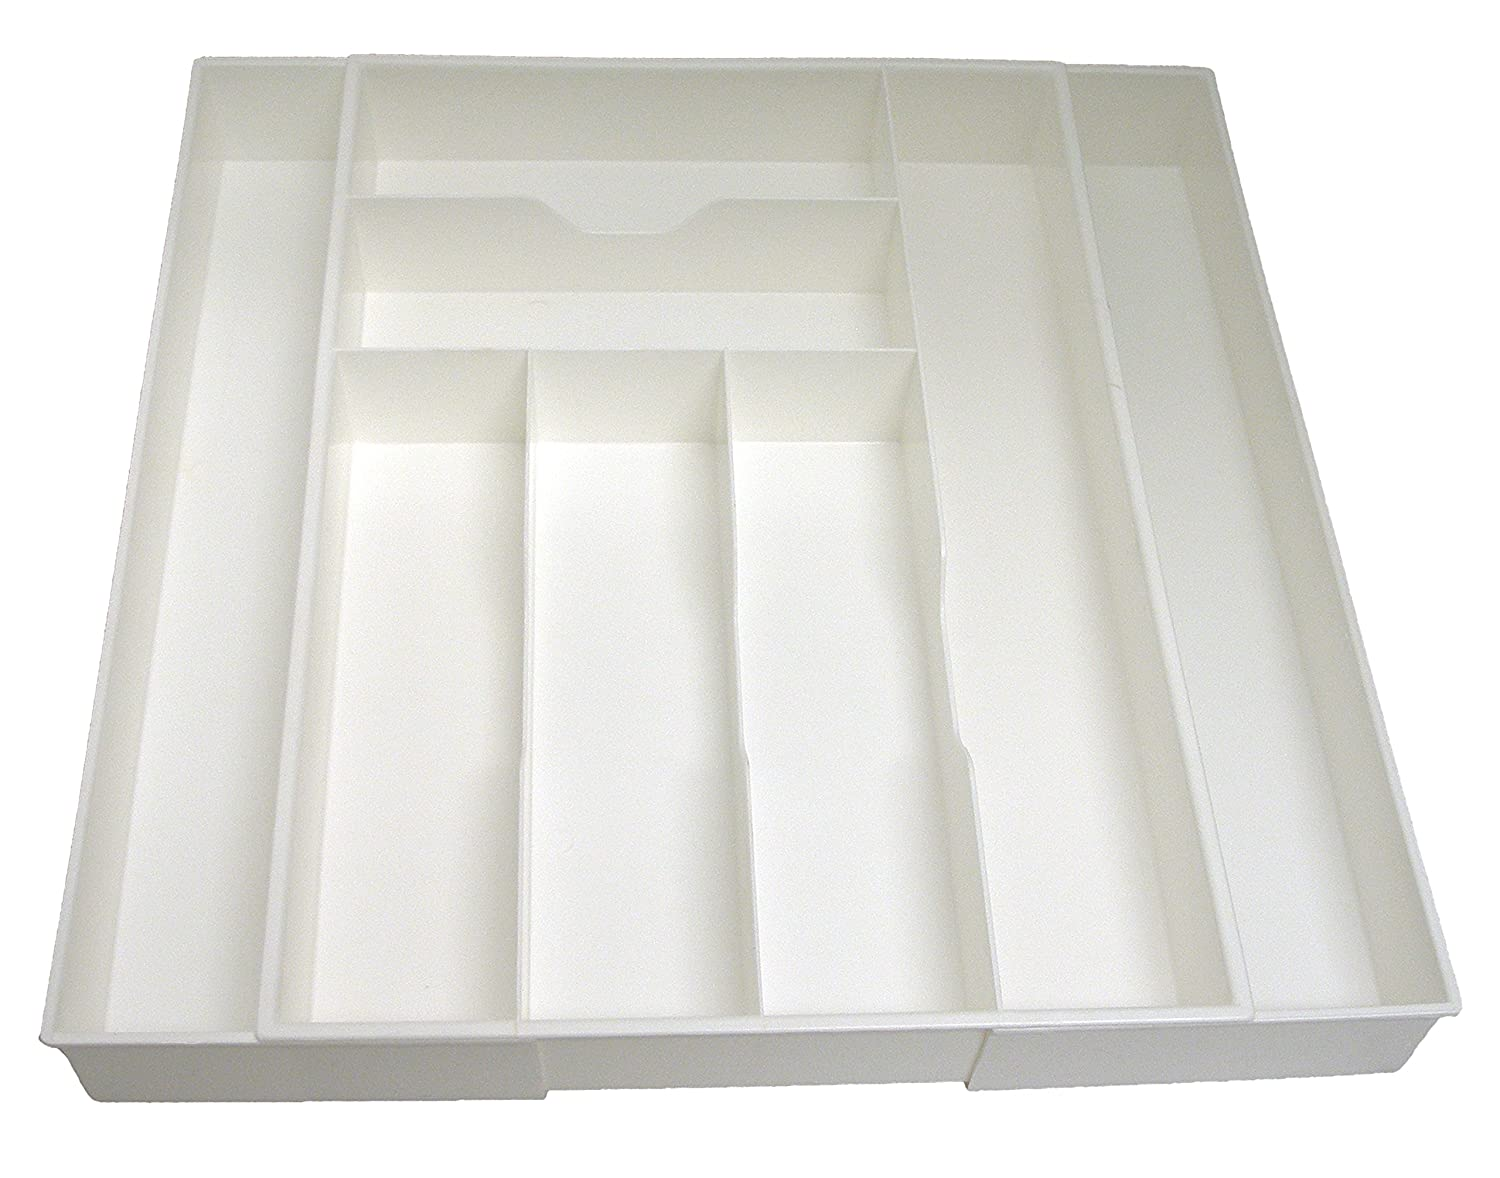 Dial Industries Expand-A-Drawer Cutlery Tray 02506